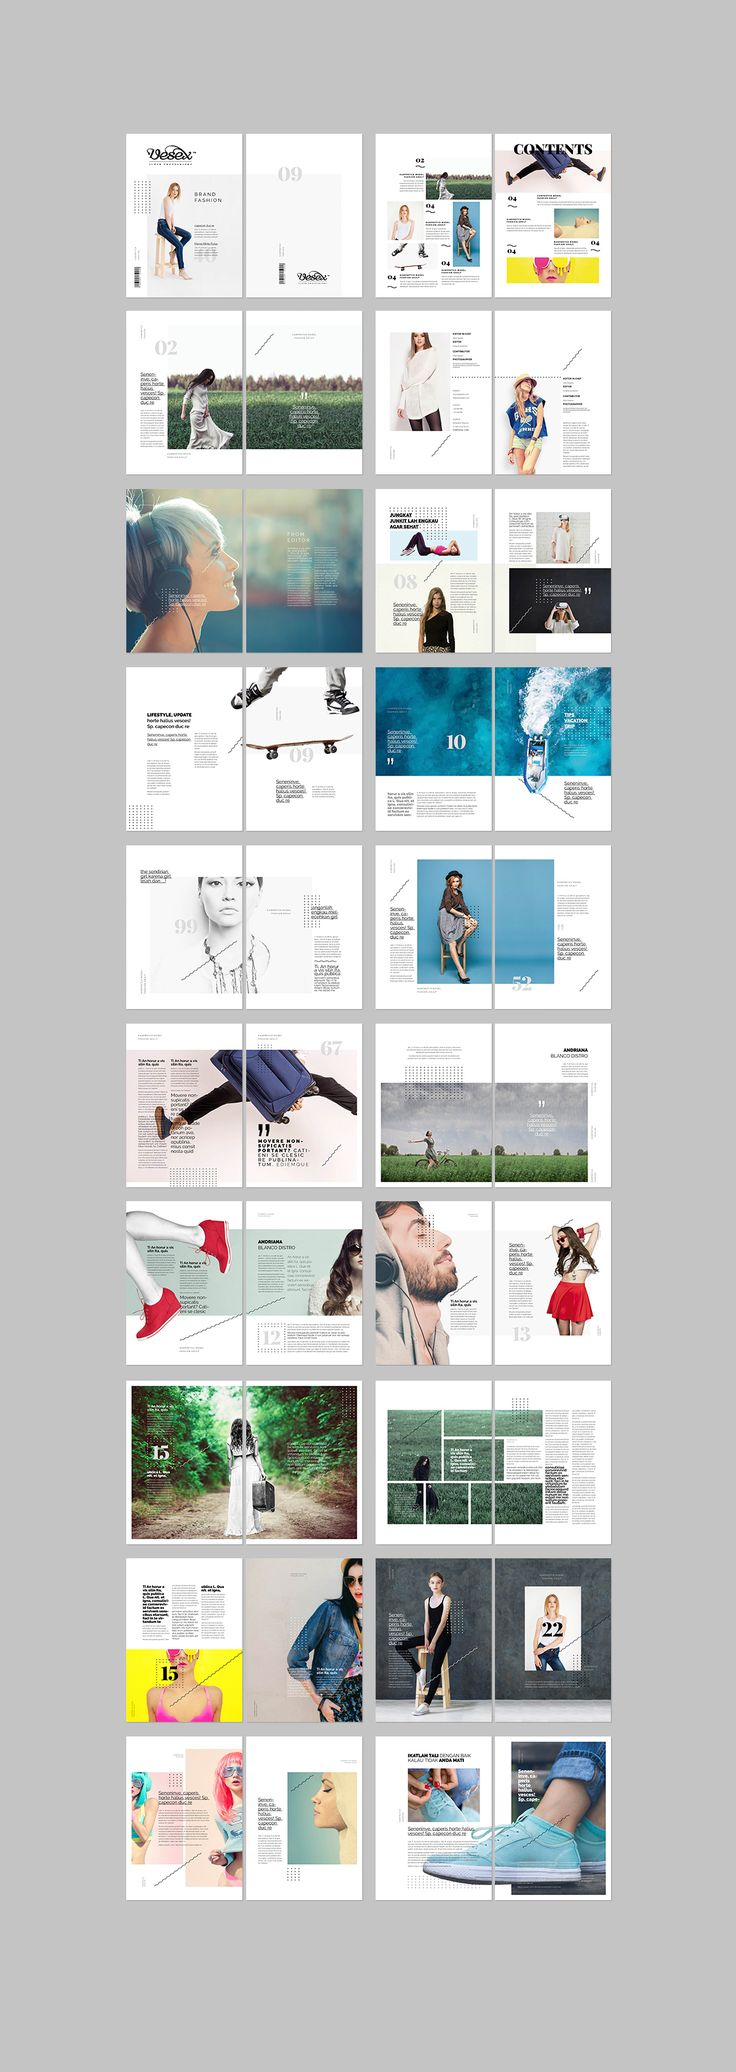 Fabuleux Best 25+ Magazine format ideas on Pinterest | Editorial layout  OW55